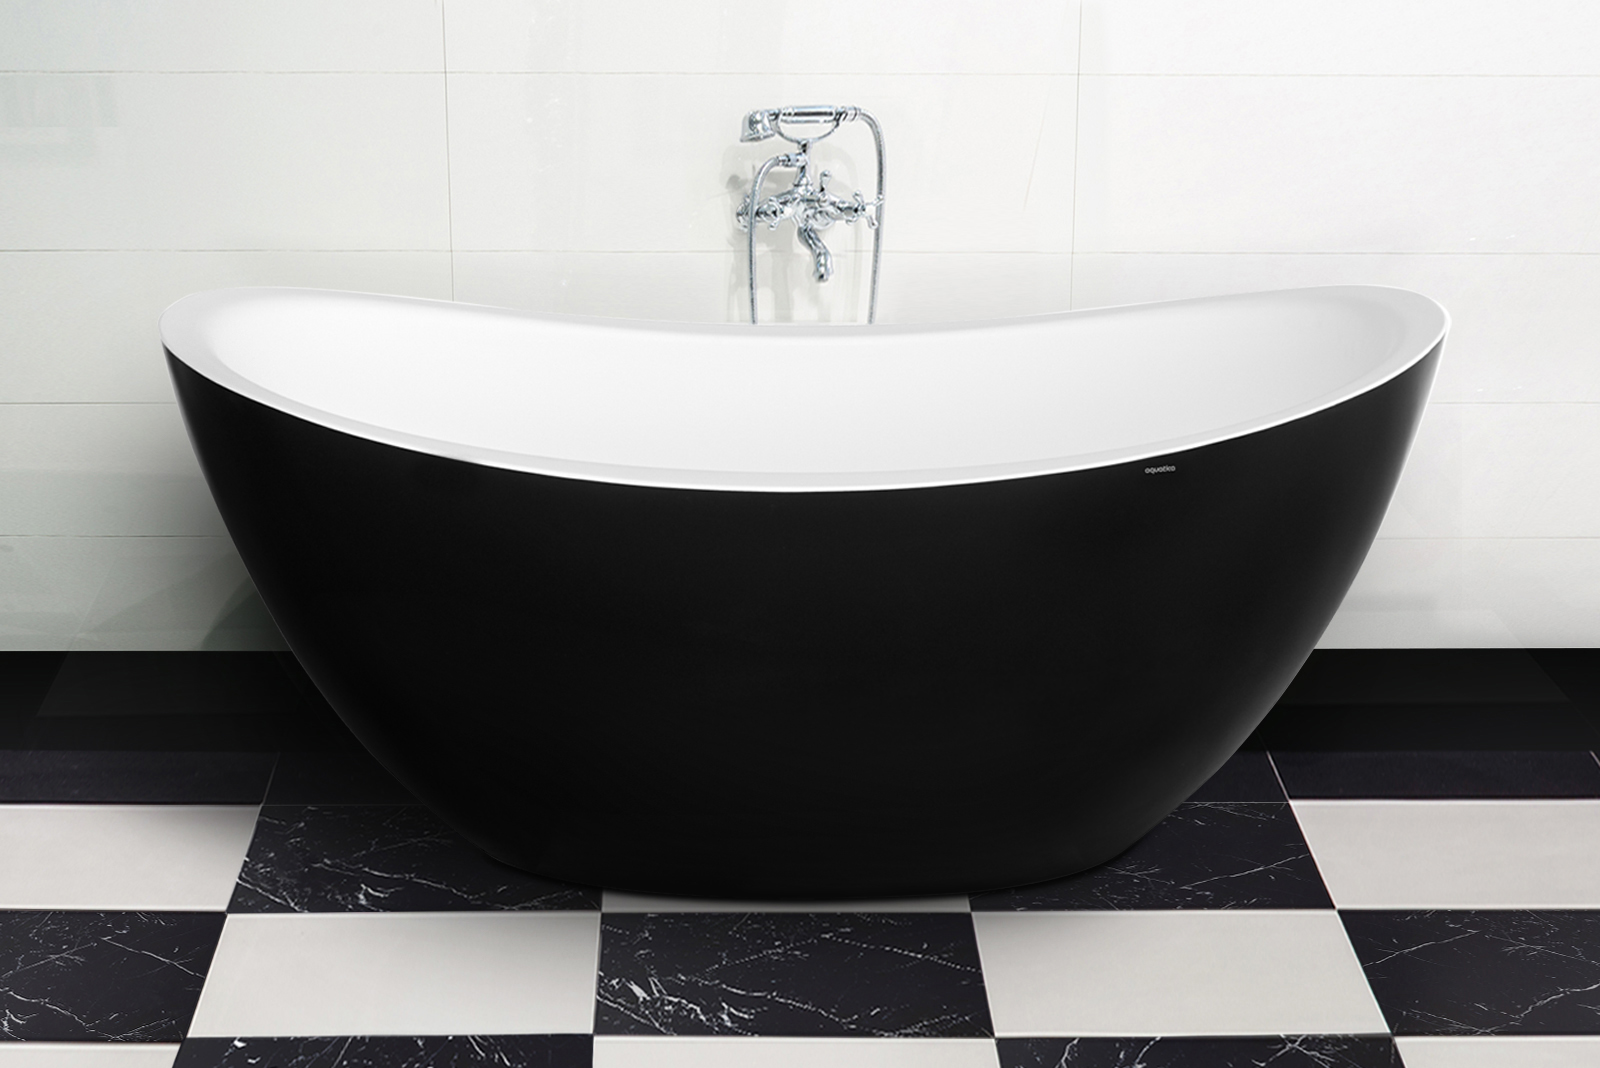 Aquatica purescape 171m blck wht freestanding solid surface bathtub customer photos 02